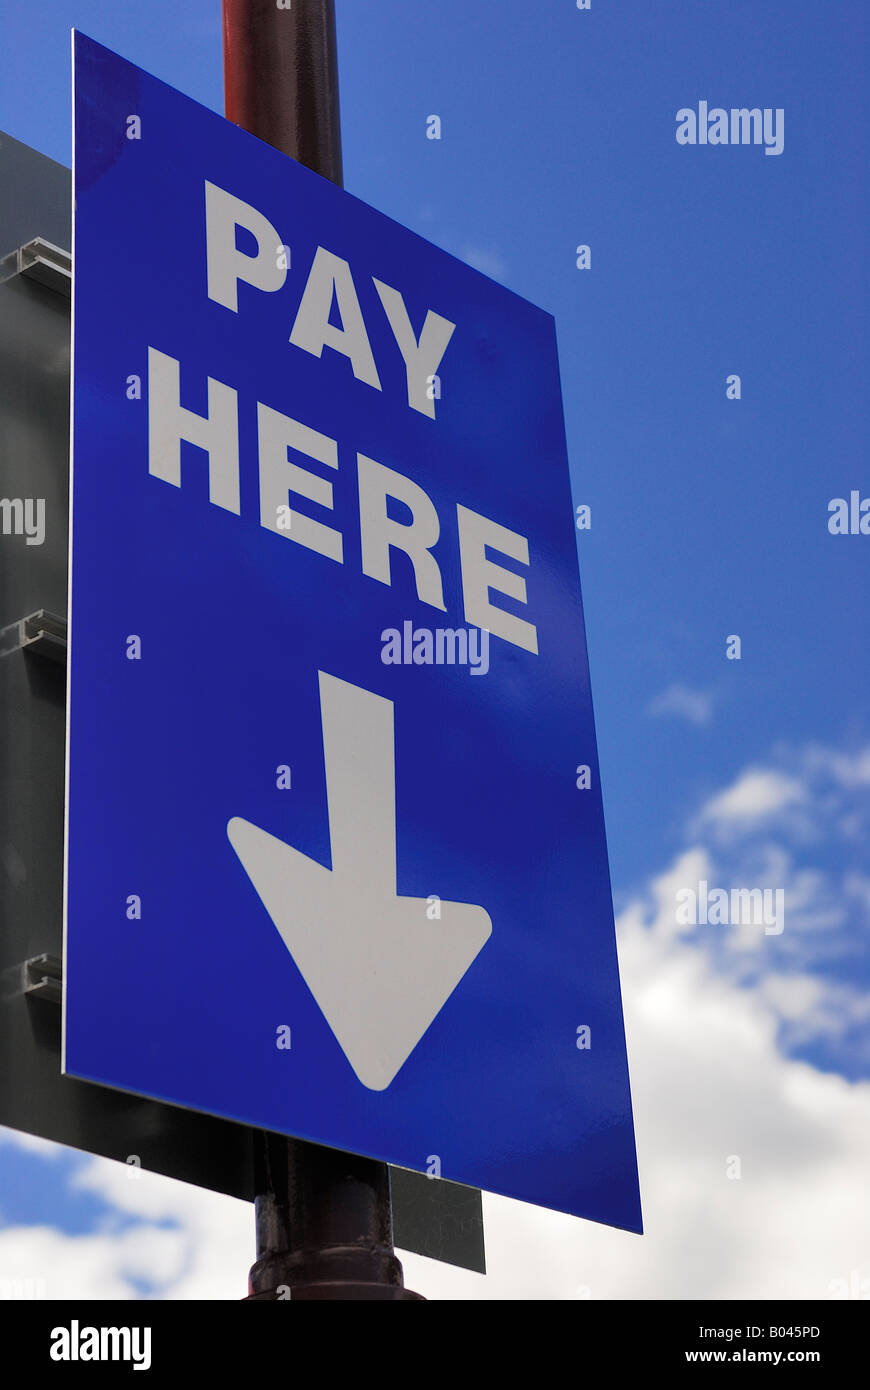 Sign Pay here in Car Park Queenstown Central Otago New Zealand Stock Photo